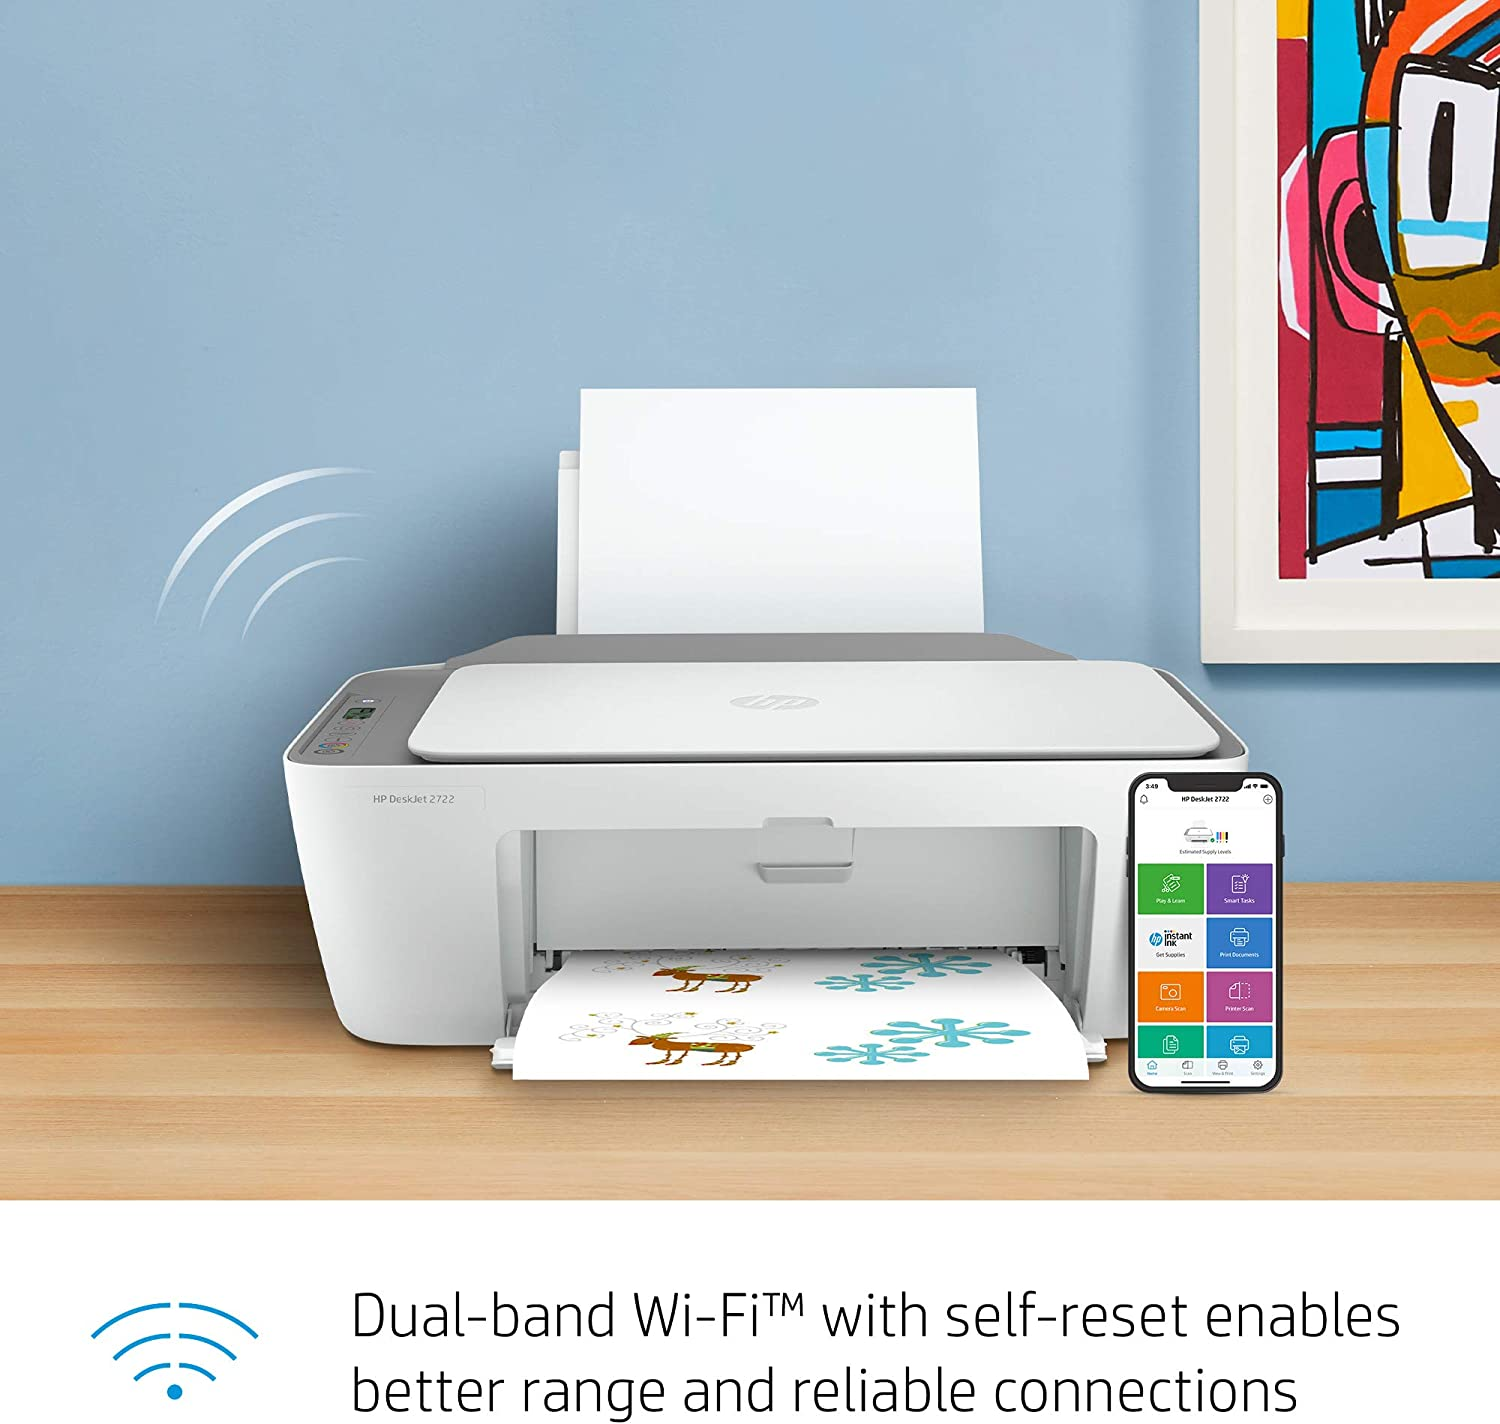 HP DeskJet 2722 All-in-One Printer- Print Copy Dual-Band Wi-Fi and scan with All-in-one Color Inkjet Printer BROAGE USB Pen Bluetooth Copy Business Office Bundle,6 Feet USB Printer Cable